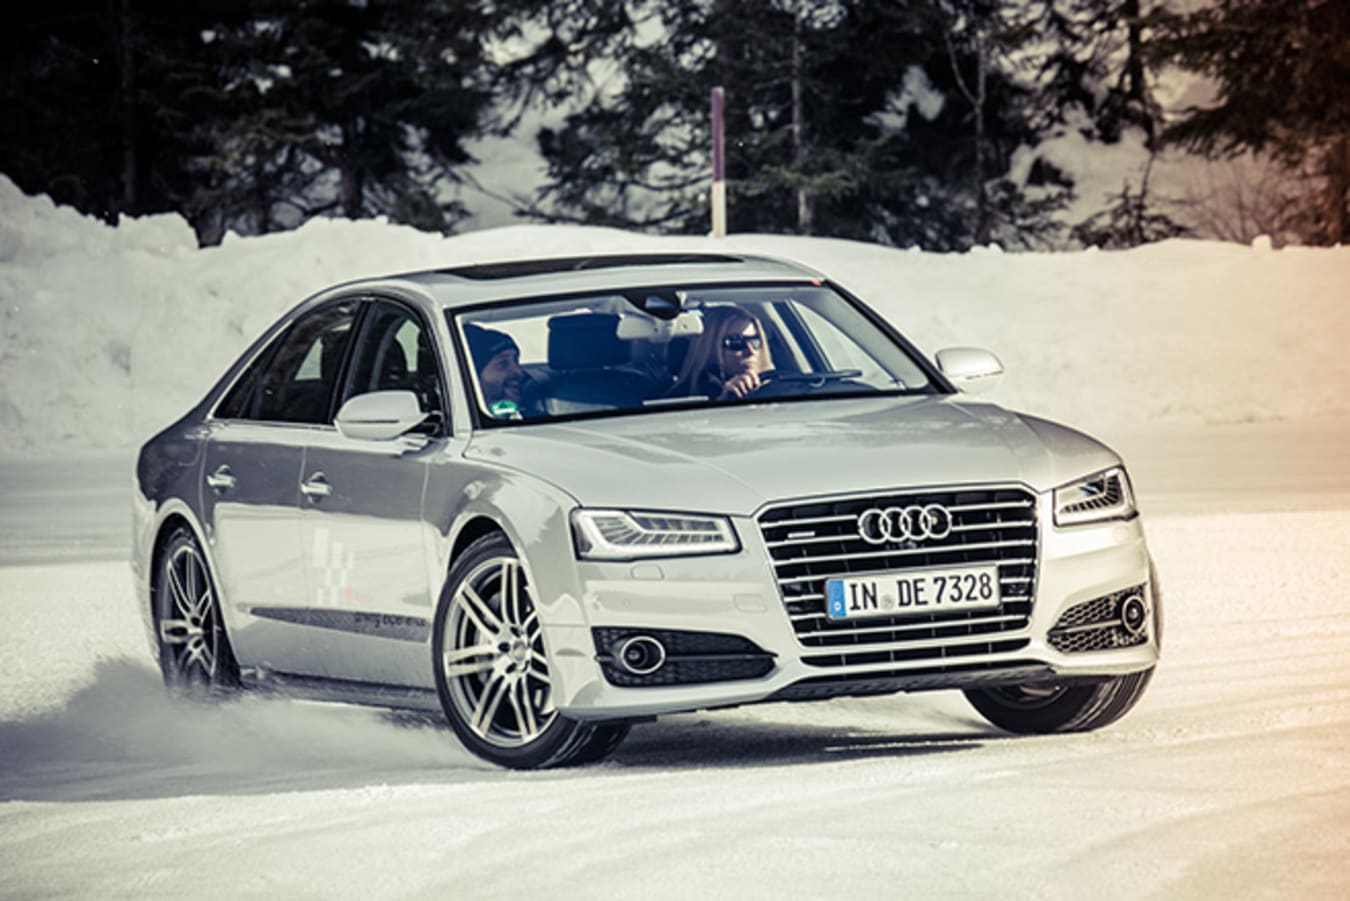 Audi Driving Experience- drifting ice